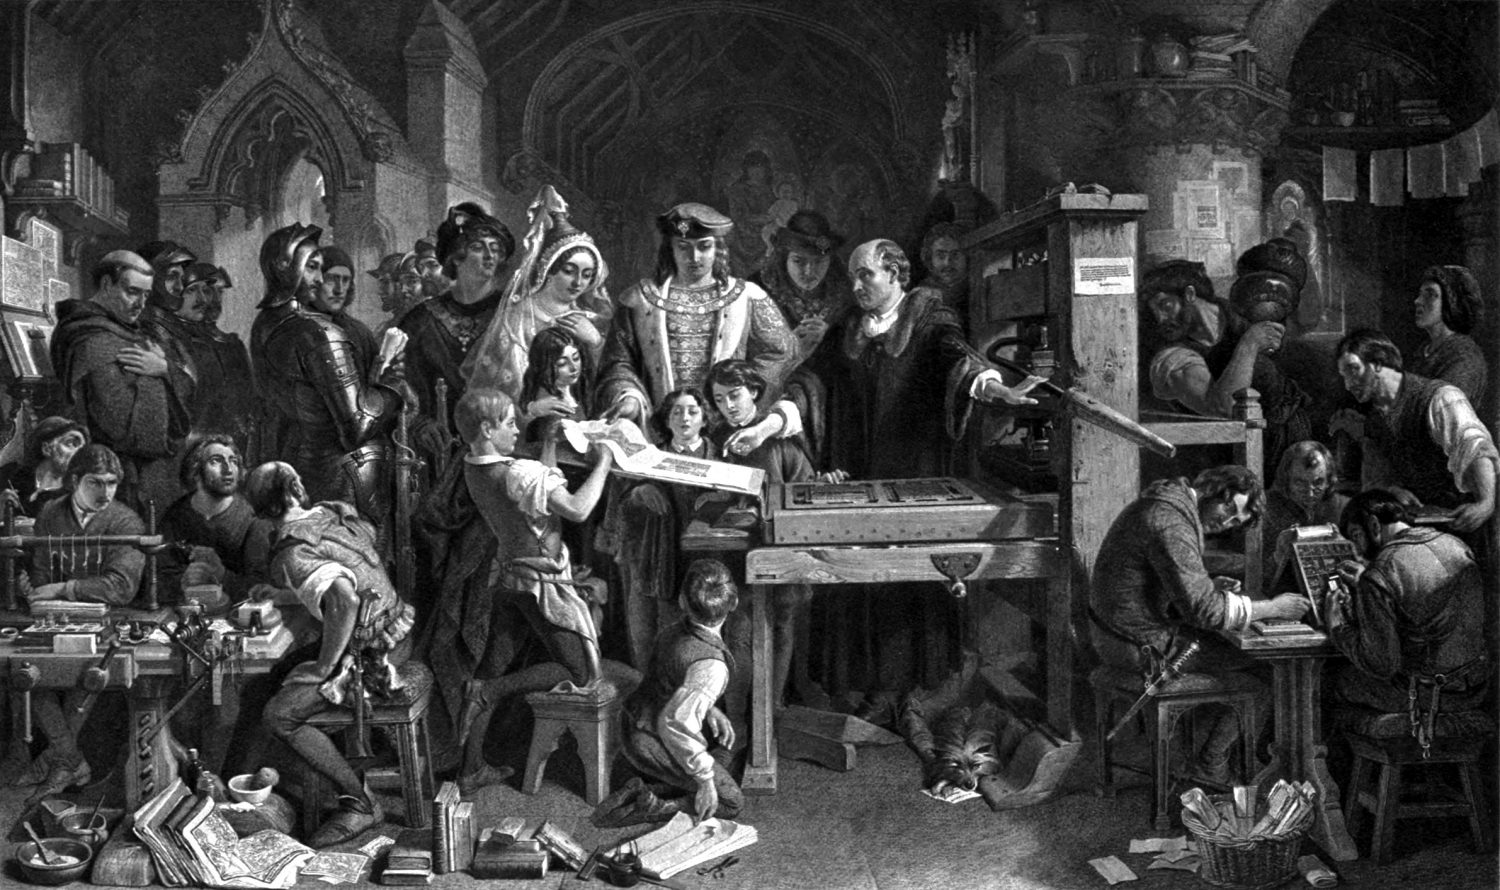 Daniel_Maclise_-_Caxton_Showing_the_First_Specimen_of_His_Printing_to_King_Edward_IV_at_the_Almonry,_Westminster